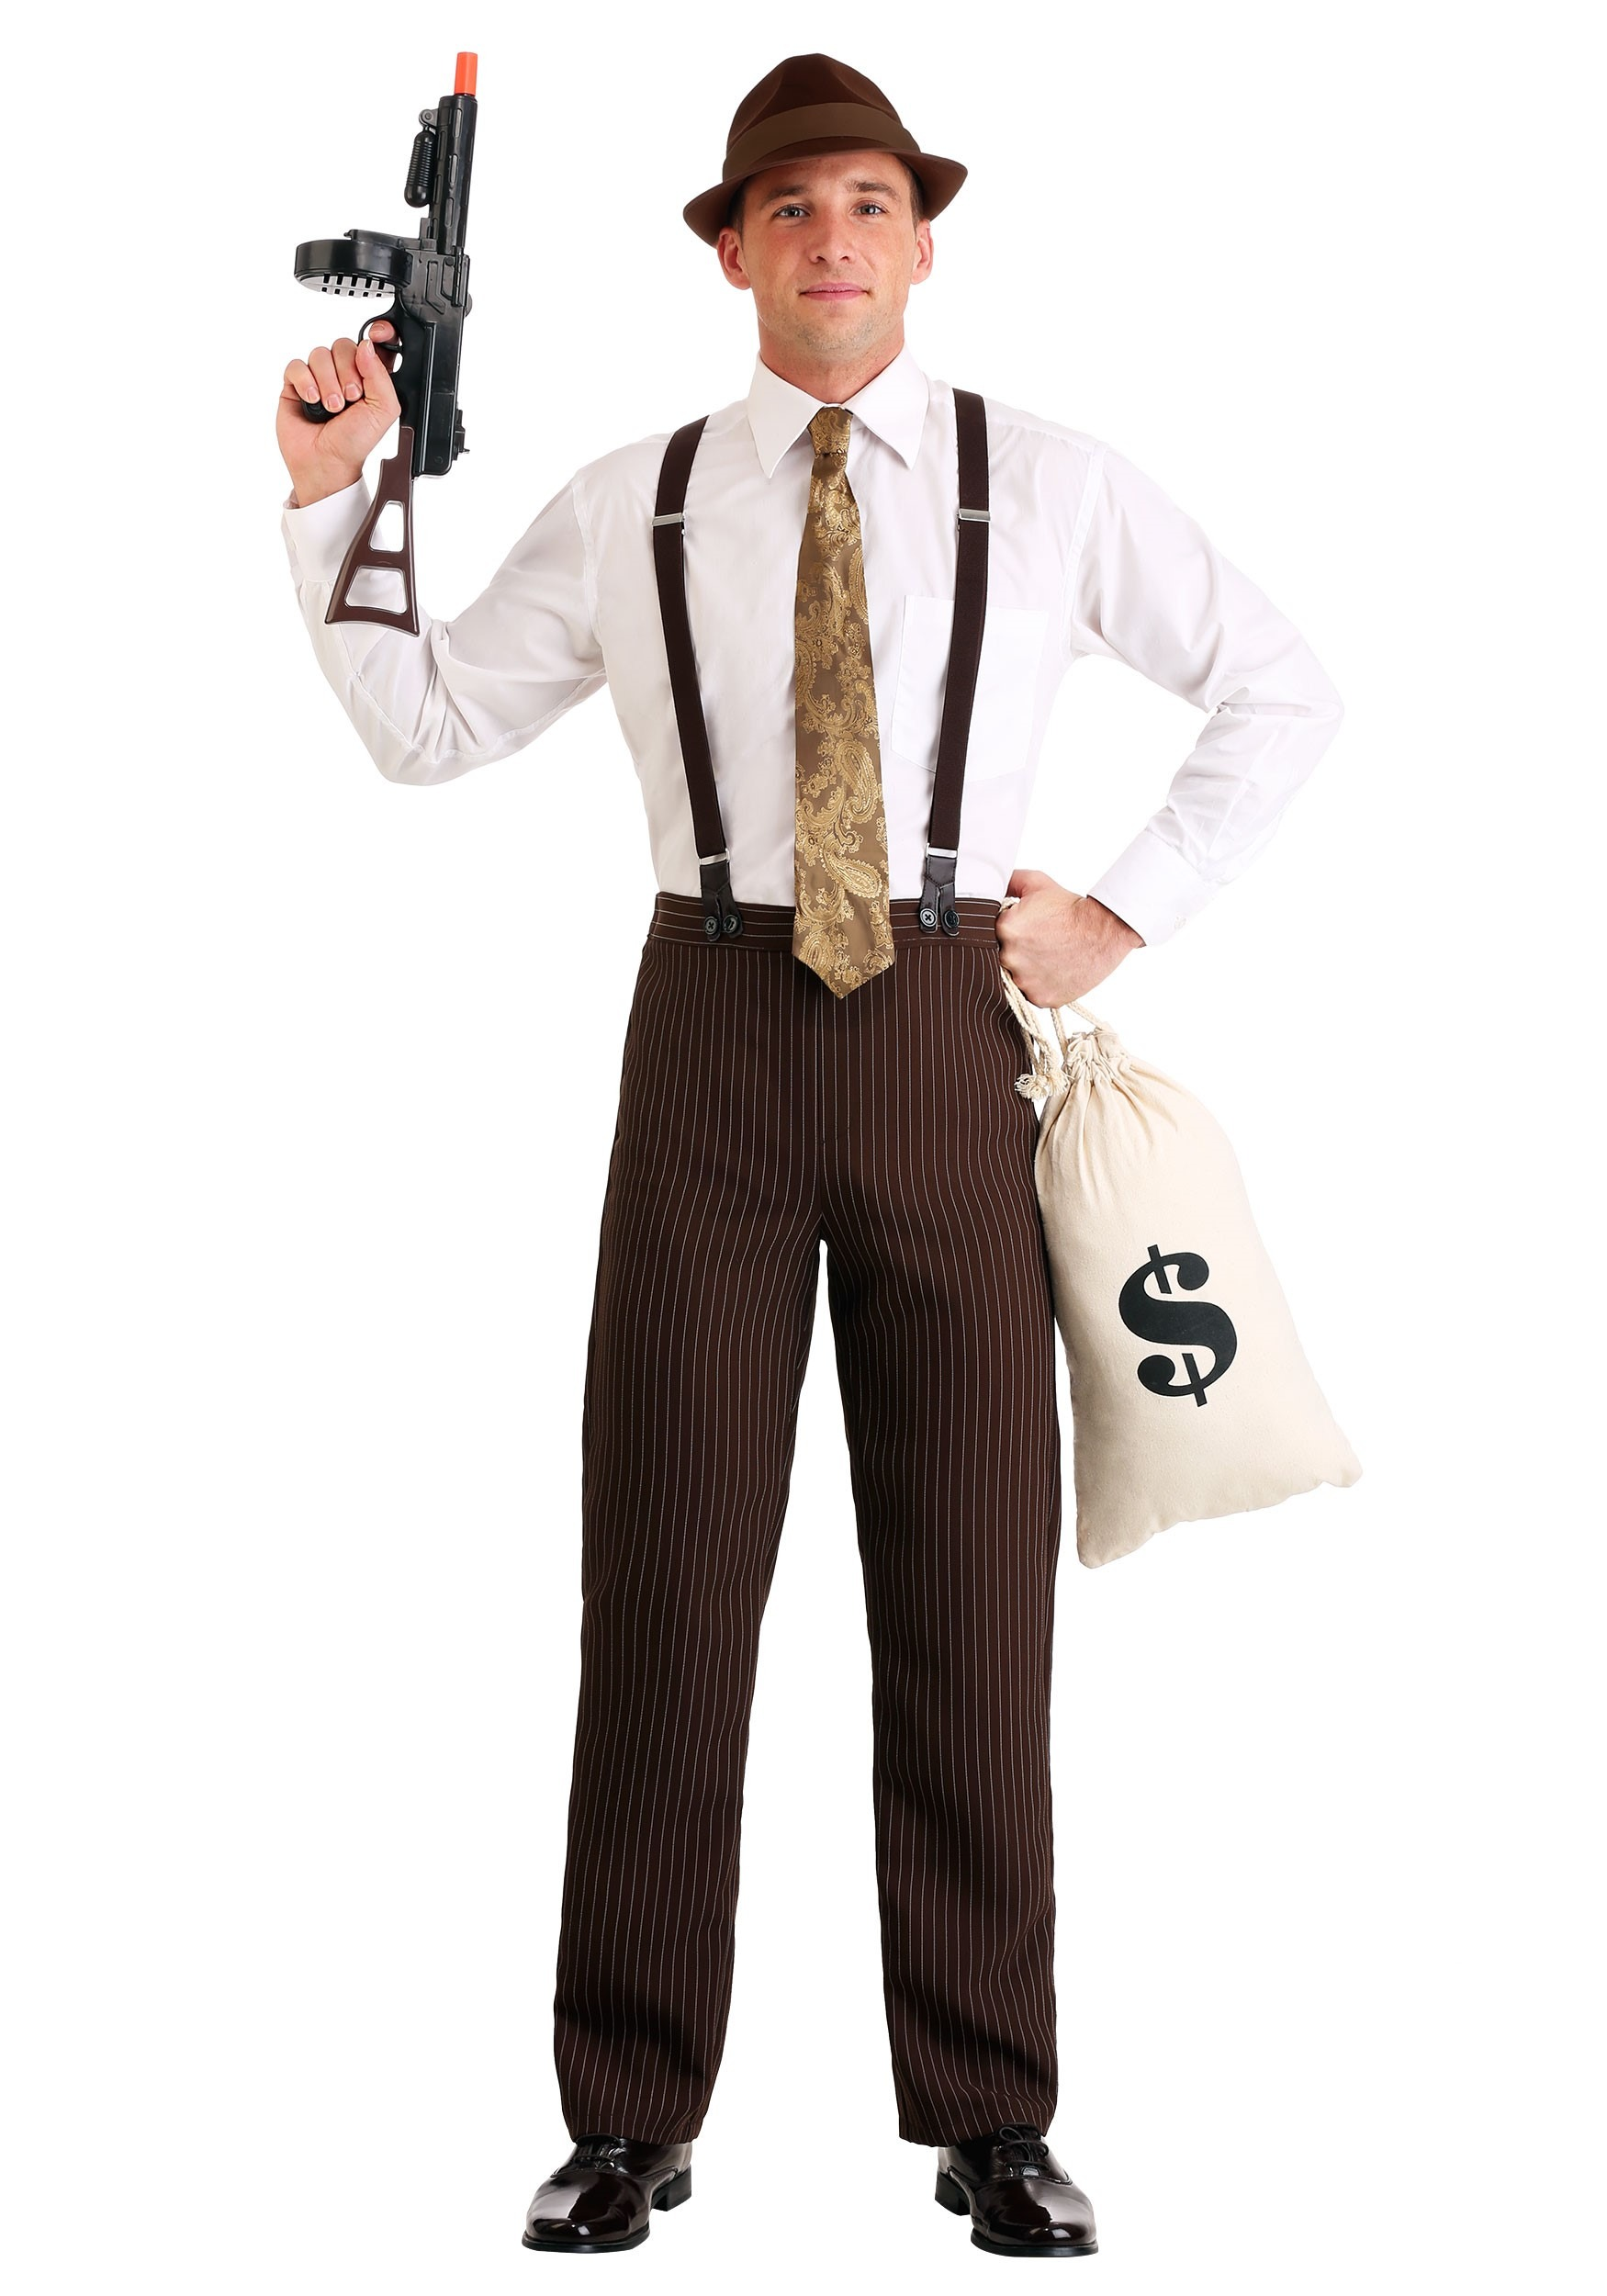 Bonnie And Clyde Costume : bonnie, clyde, costume, Men's, Clyde, Gangster, Costume, Robber, Halloween